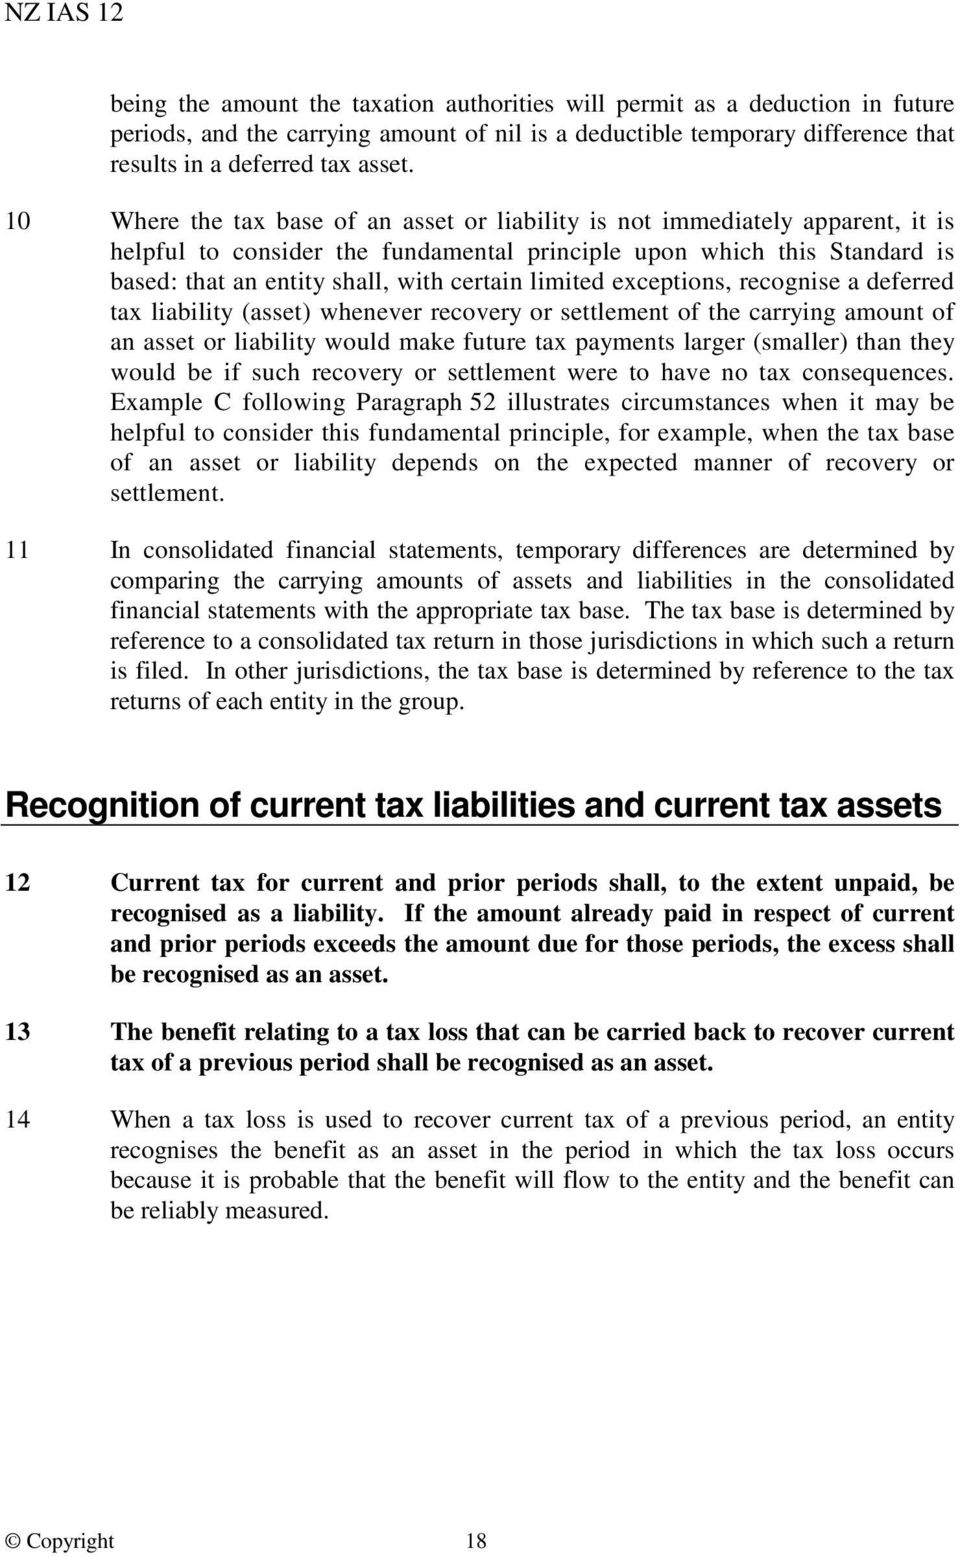 limited exceptions, recognise a deferred tax liability (asset) whenever recovery or settlement of the carrying amount of an asset or liability would make future tax payments larger (smaller) than